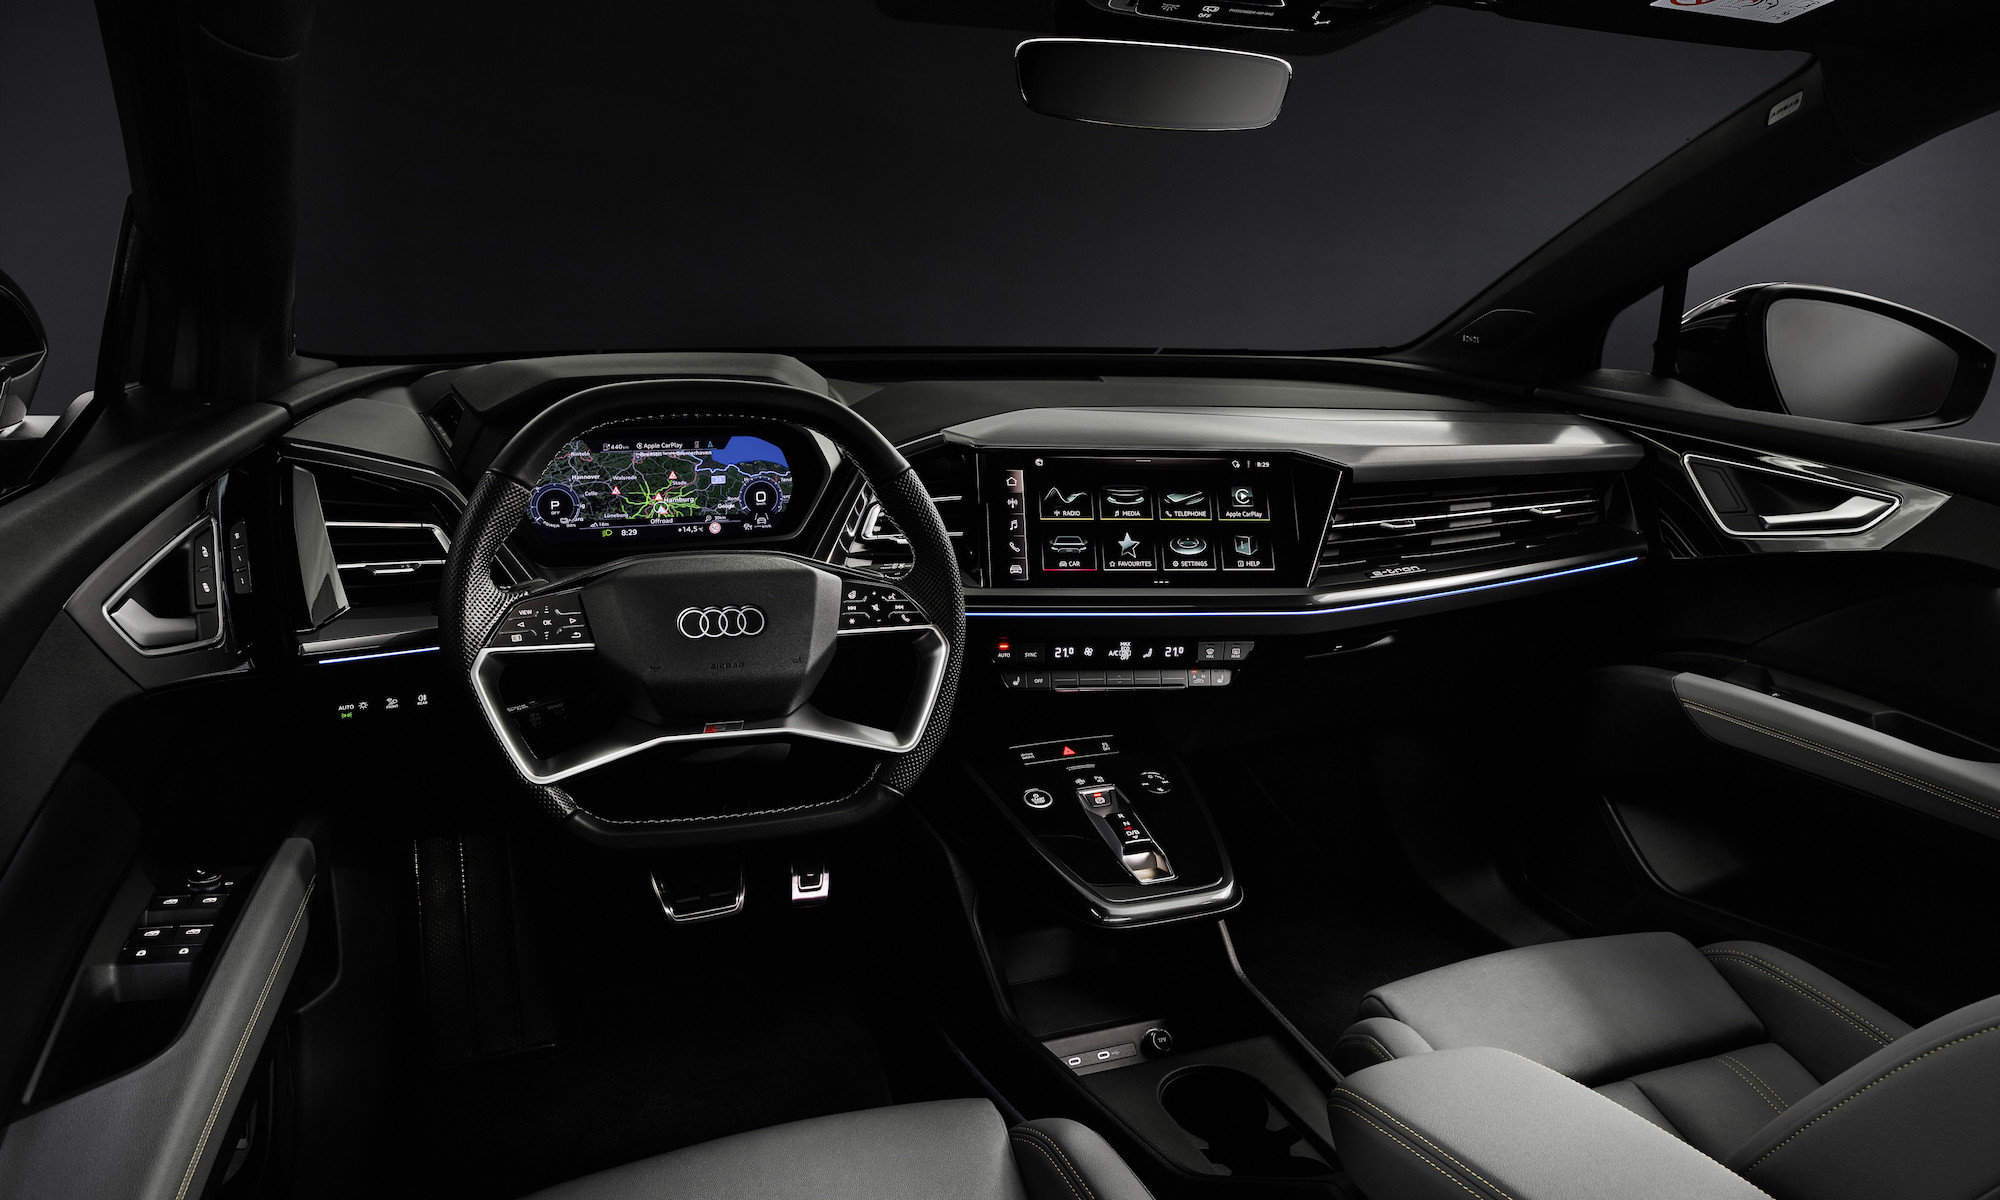 Audi has revealed an AR display for its next EV—the Q4 e-tron